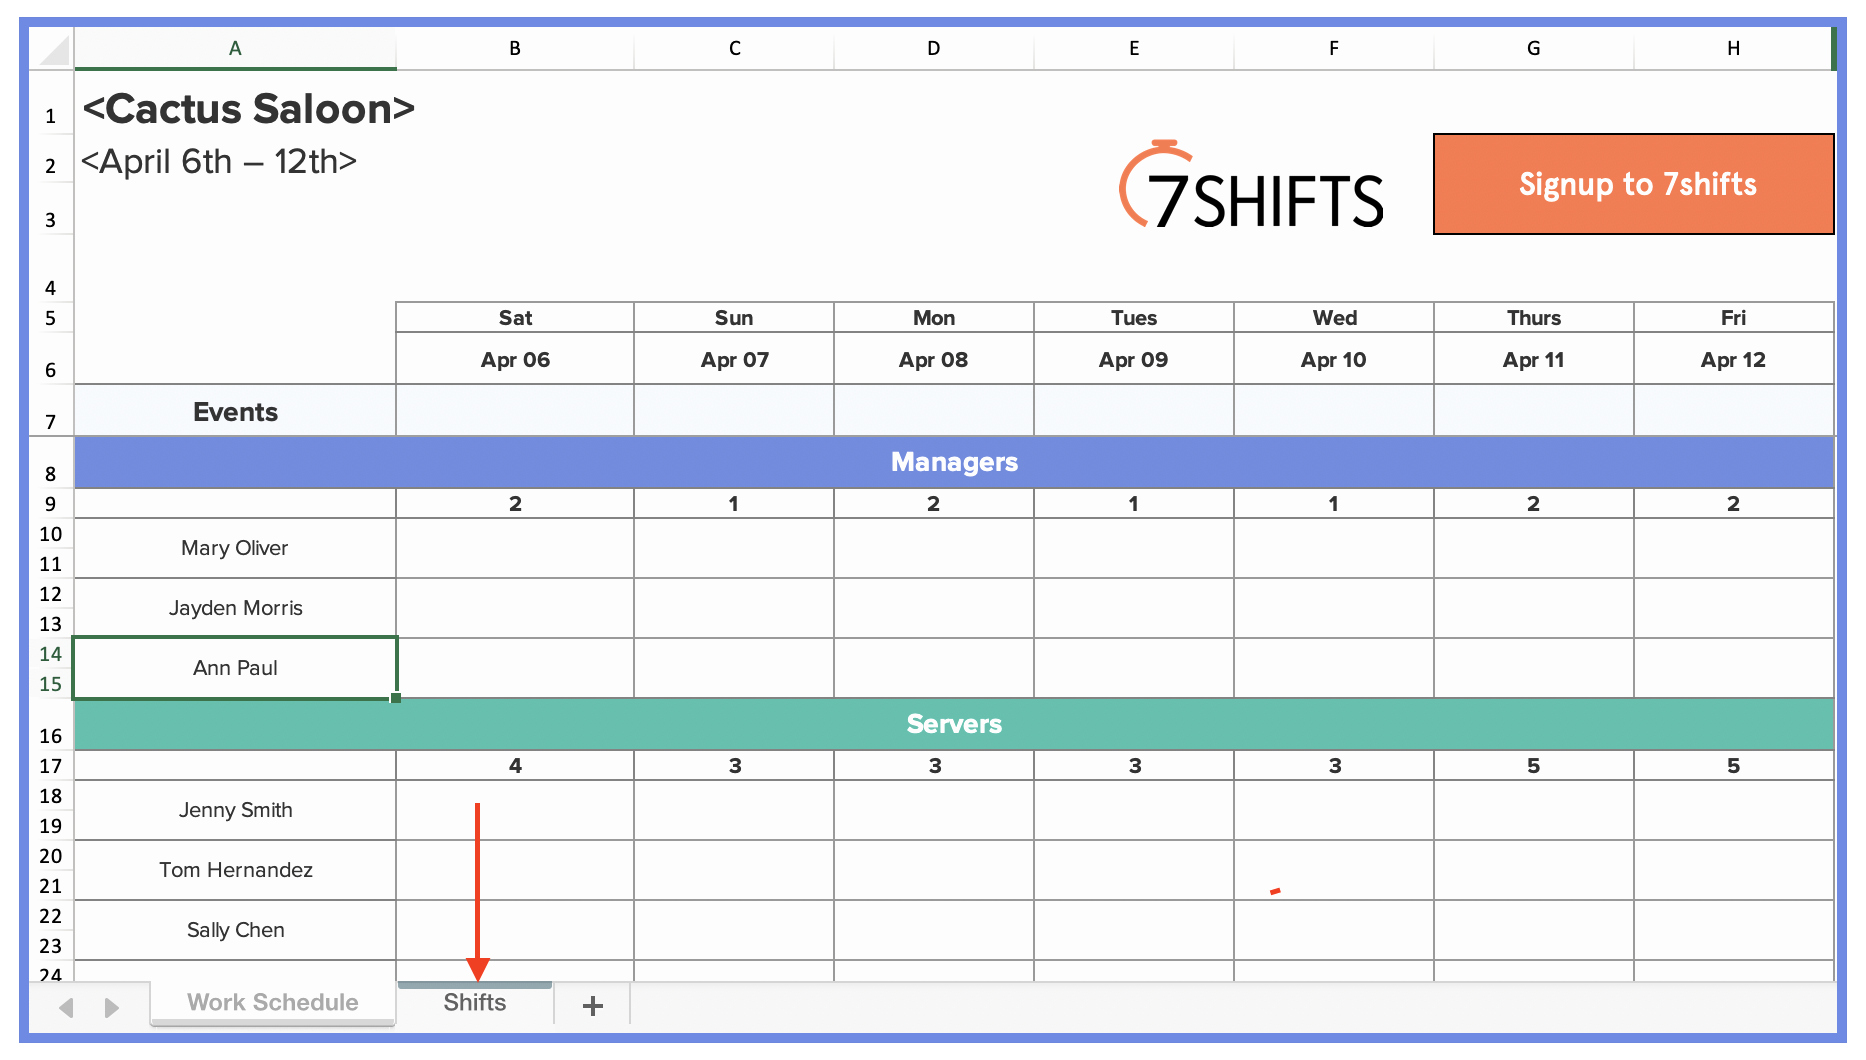 Work Plan Template Excel Elegant How to Make A Restaurant Work Schedule with Free Excel